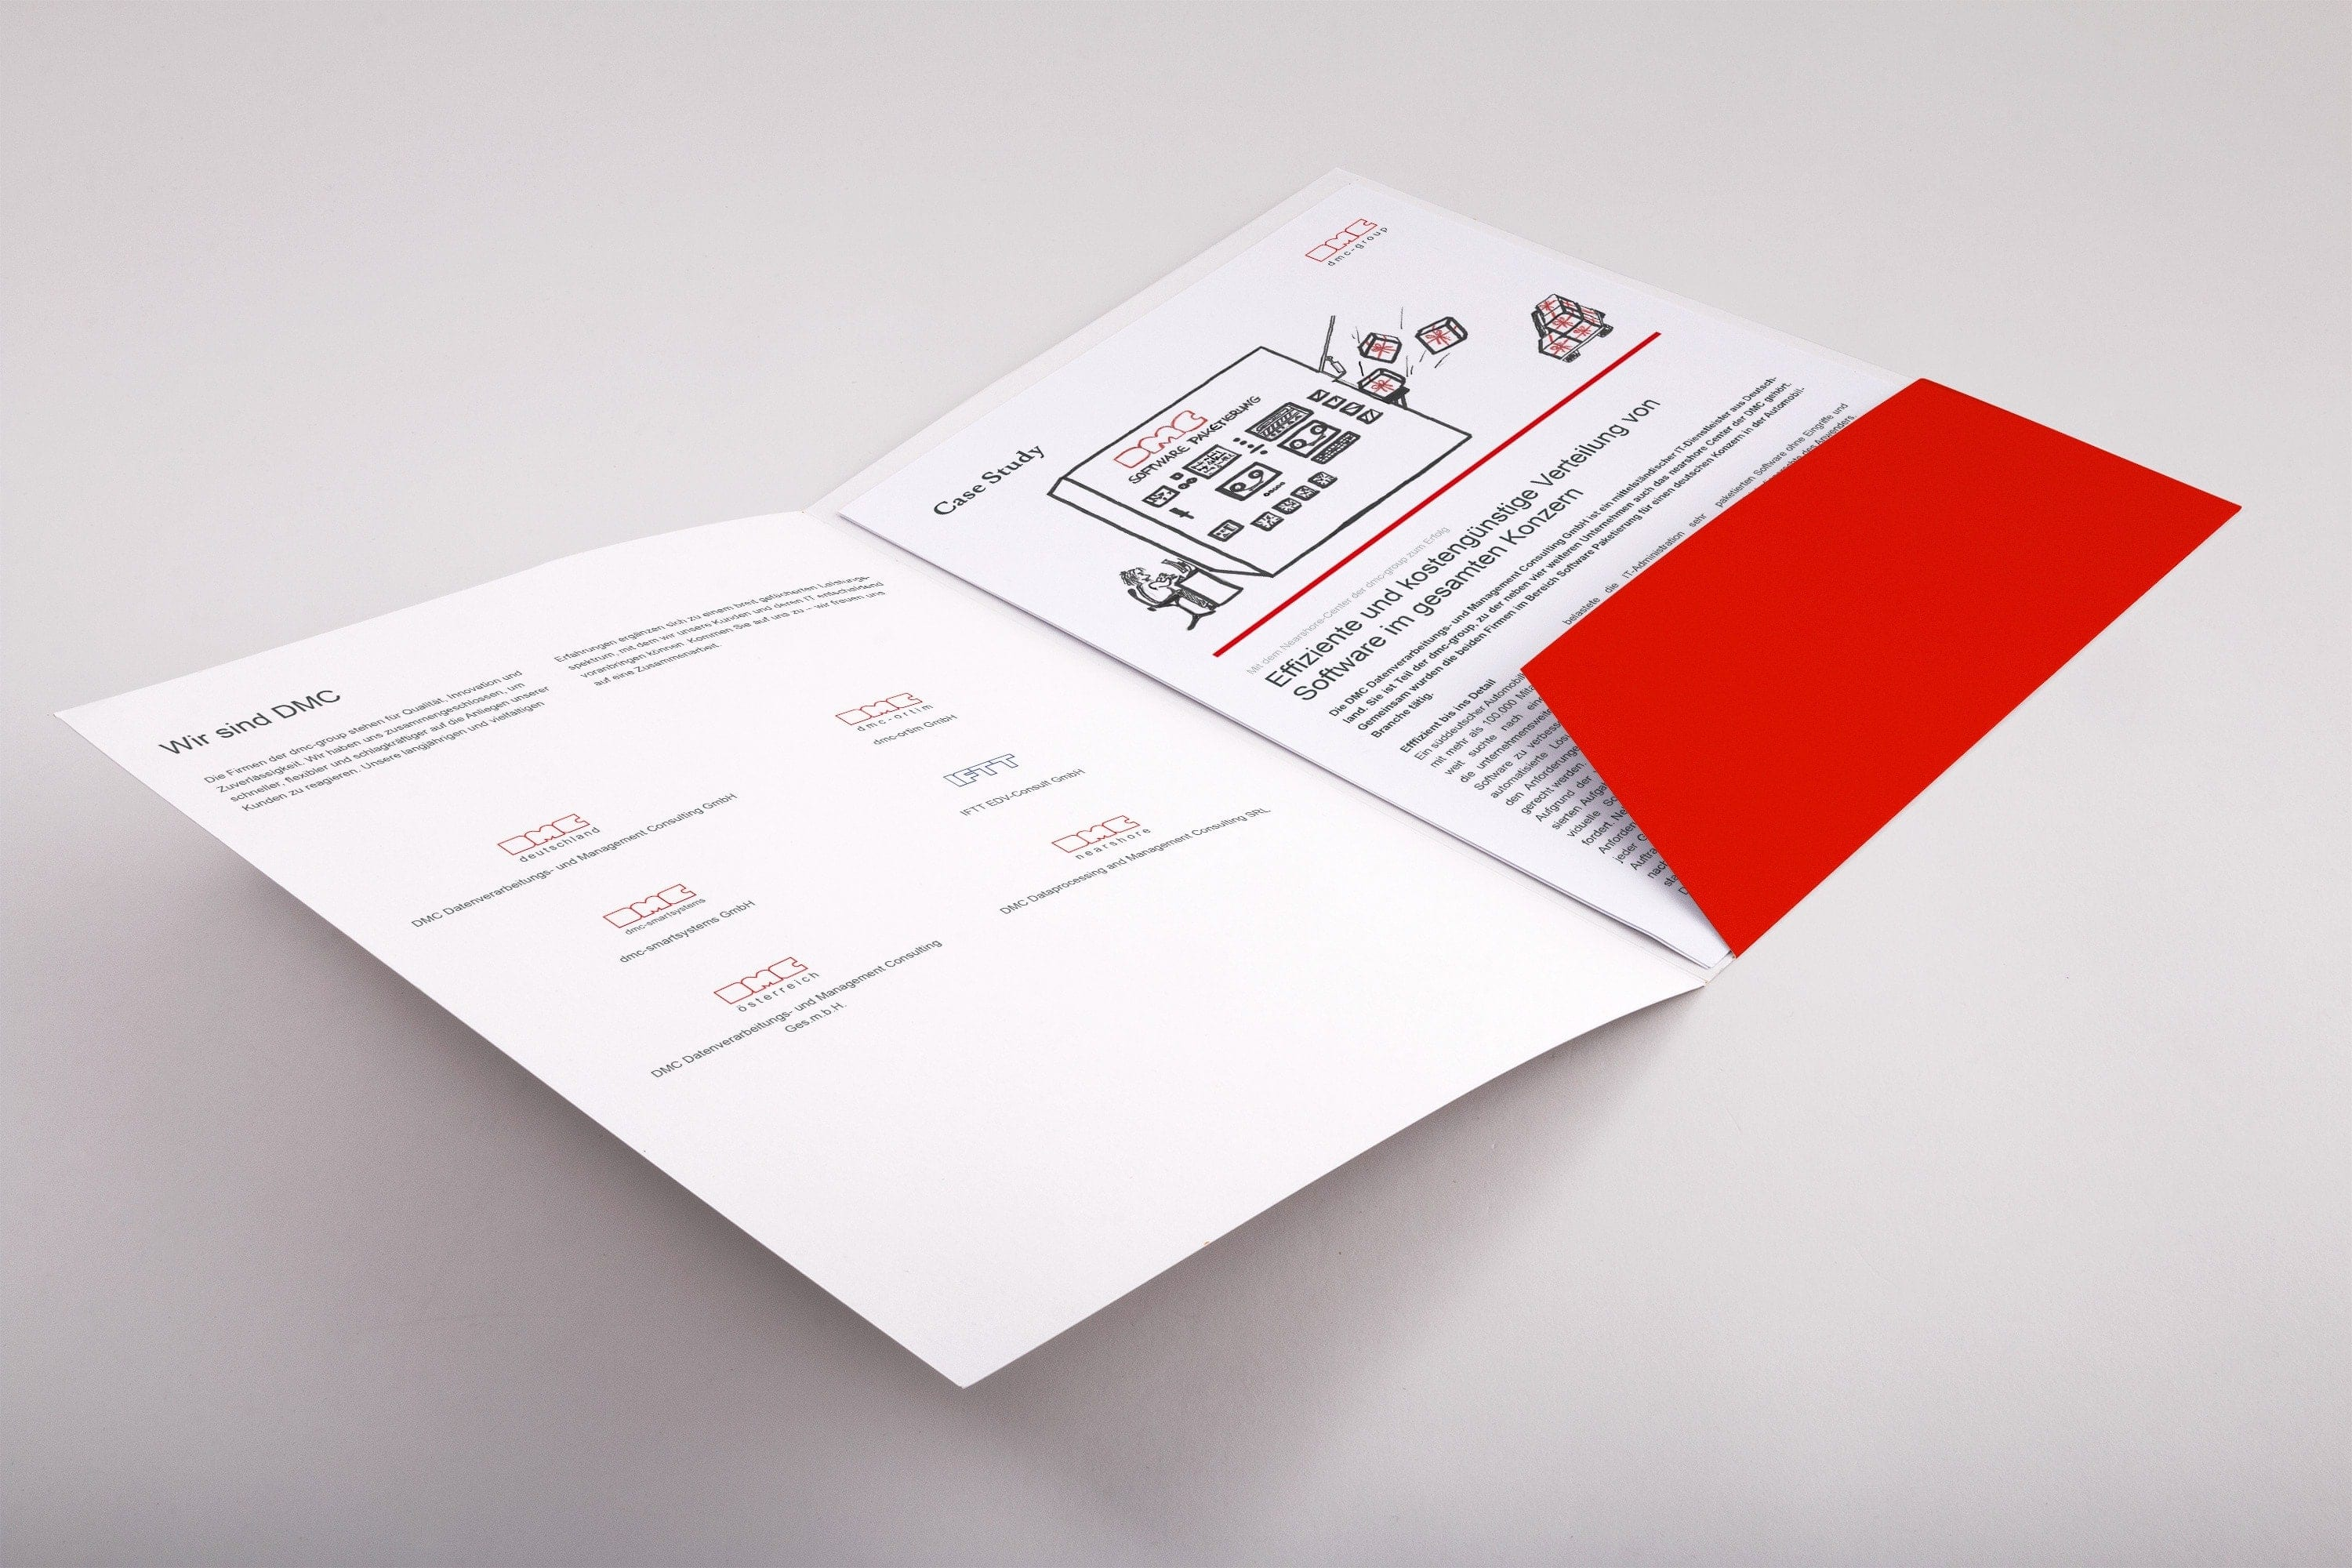 maxfath-dmc-group-muenchen-redesign-branding-print-folder-innenseite